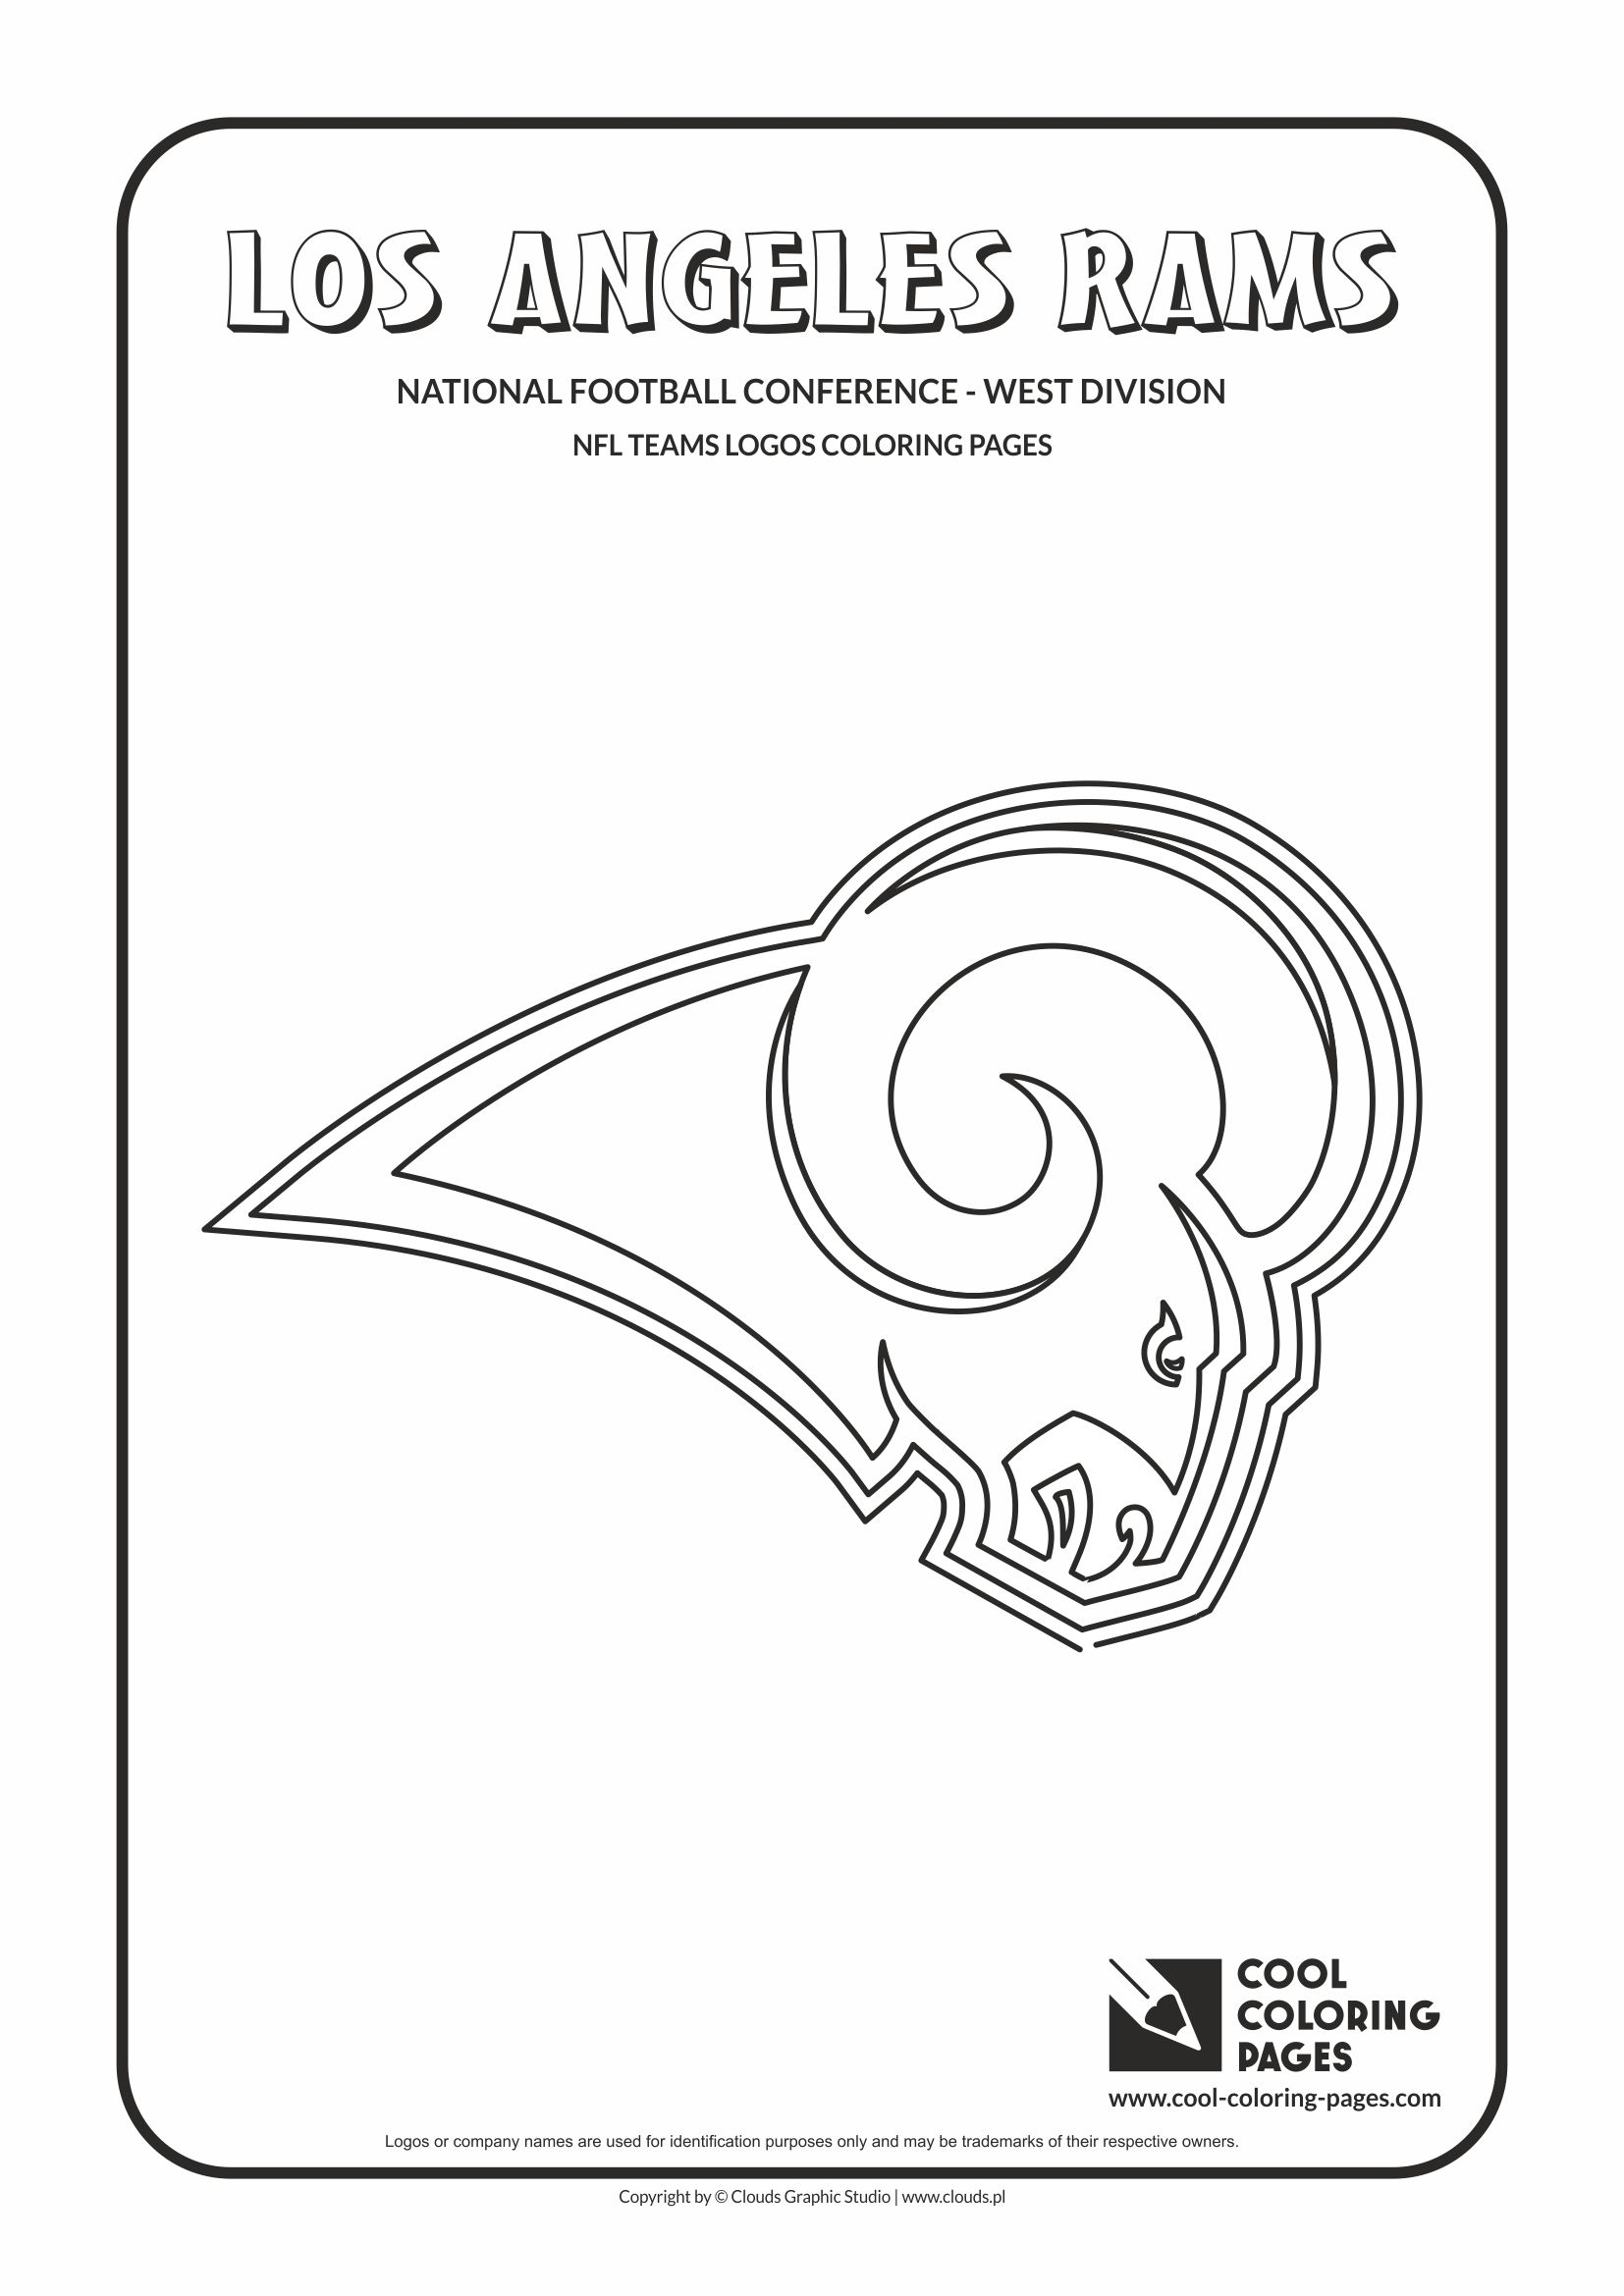 Cool Coloring Pages - NFL American Football Clubs Logos - National Football Conference - West Division / Los Angeles Rams logo / Coloring page with Los Angeles Rams logo